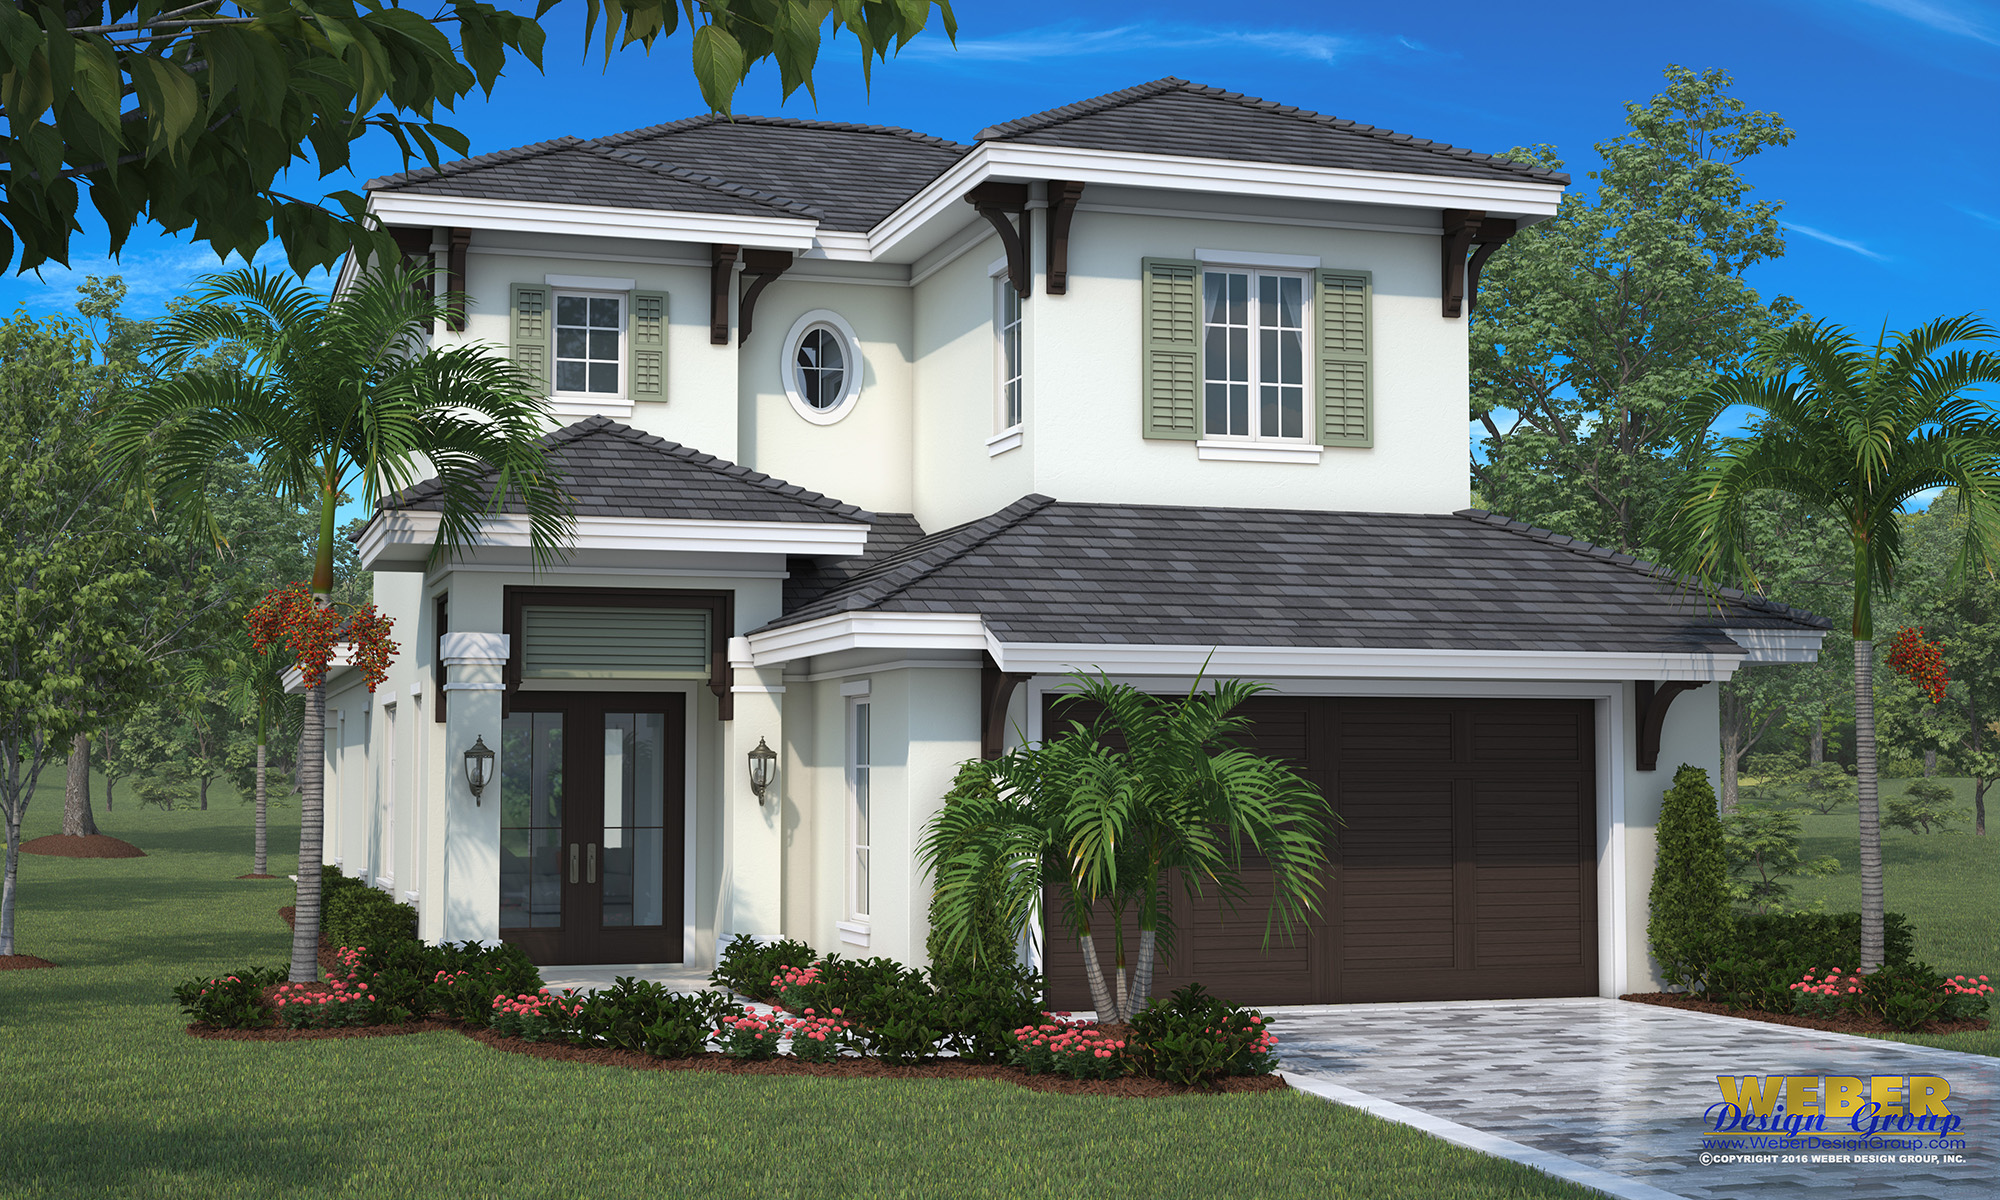 Superb The St. John House Plan Is Ideal For A Narrow Lot. The Floor Plan Is  Two Stories With An Open Layout Where The Great Room, Island Kitchen And  Dining Room ...